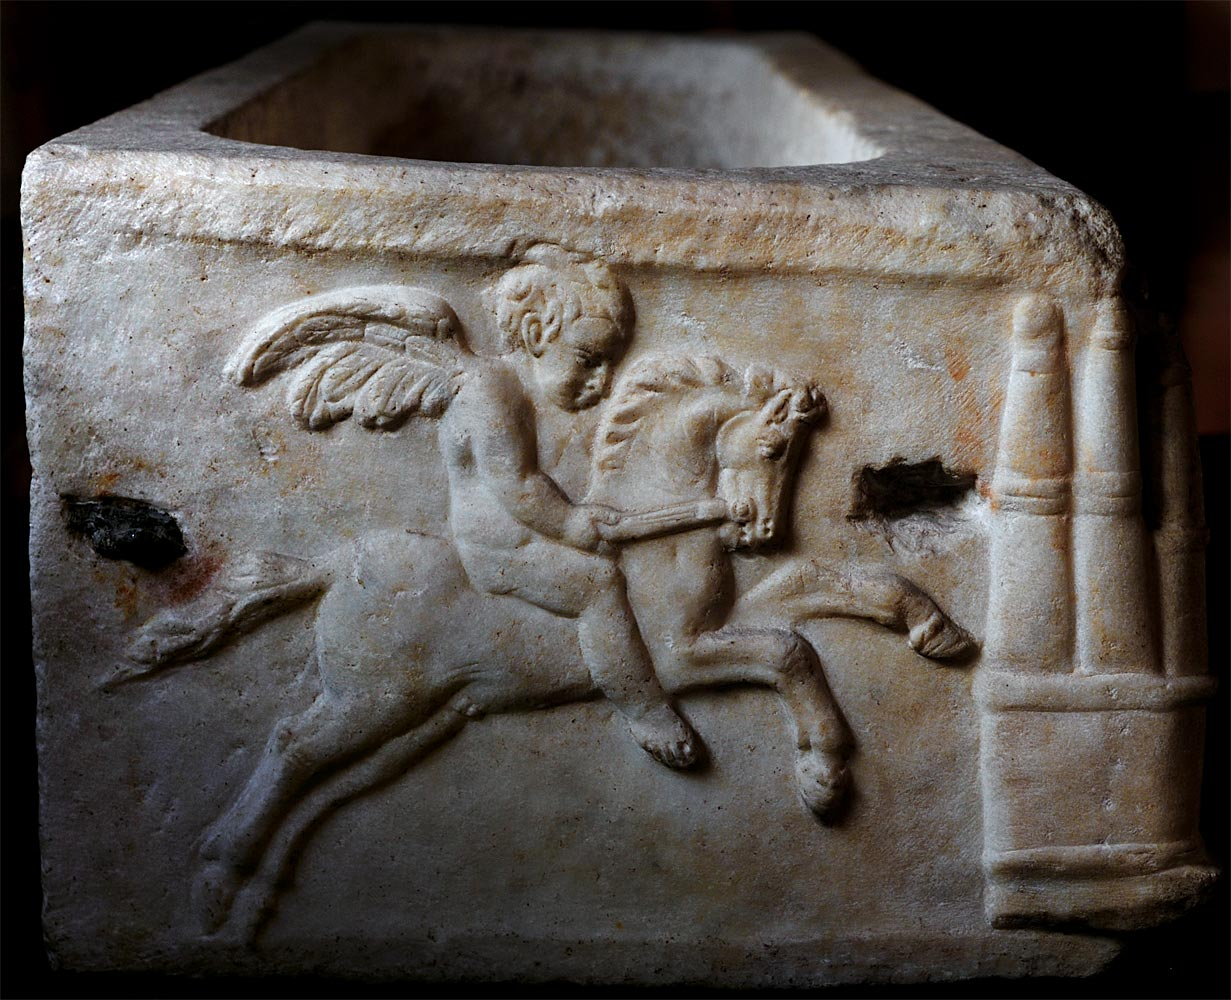 Sarcophagus of a child with a chariot race (left side wall). Marble. 2nd century CE. Verona, Museum-Lapidarium of Maffei